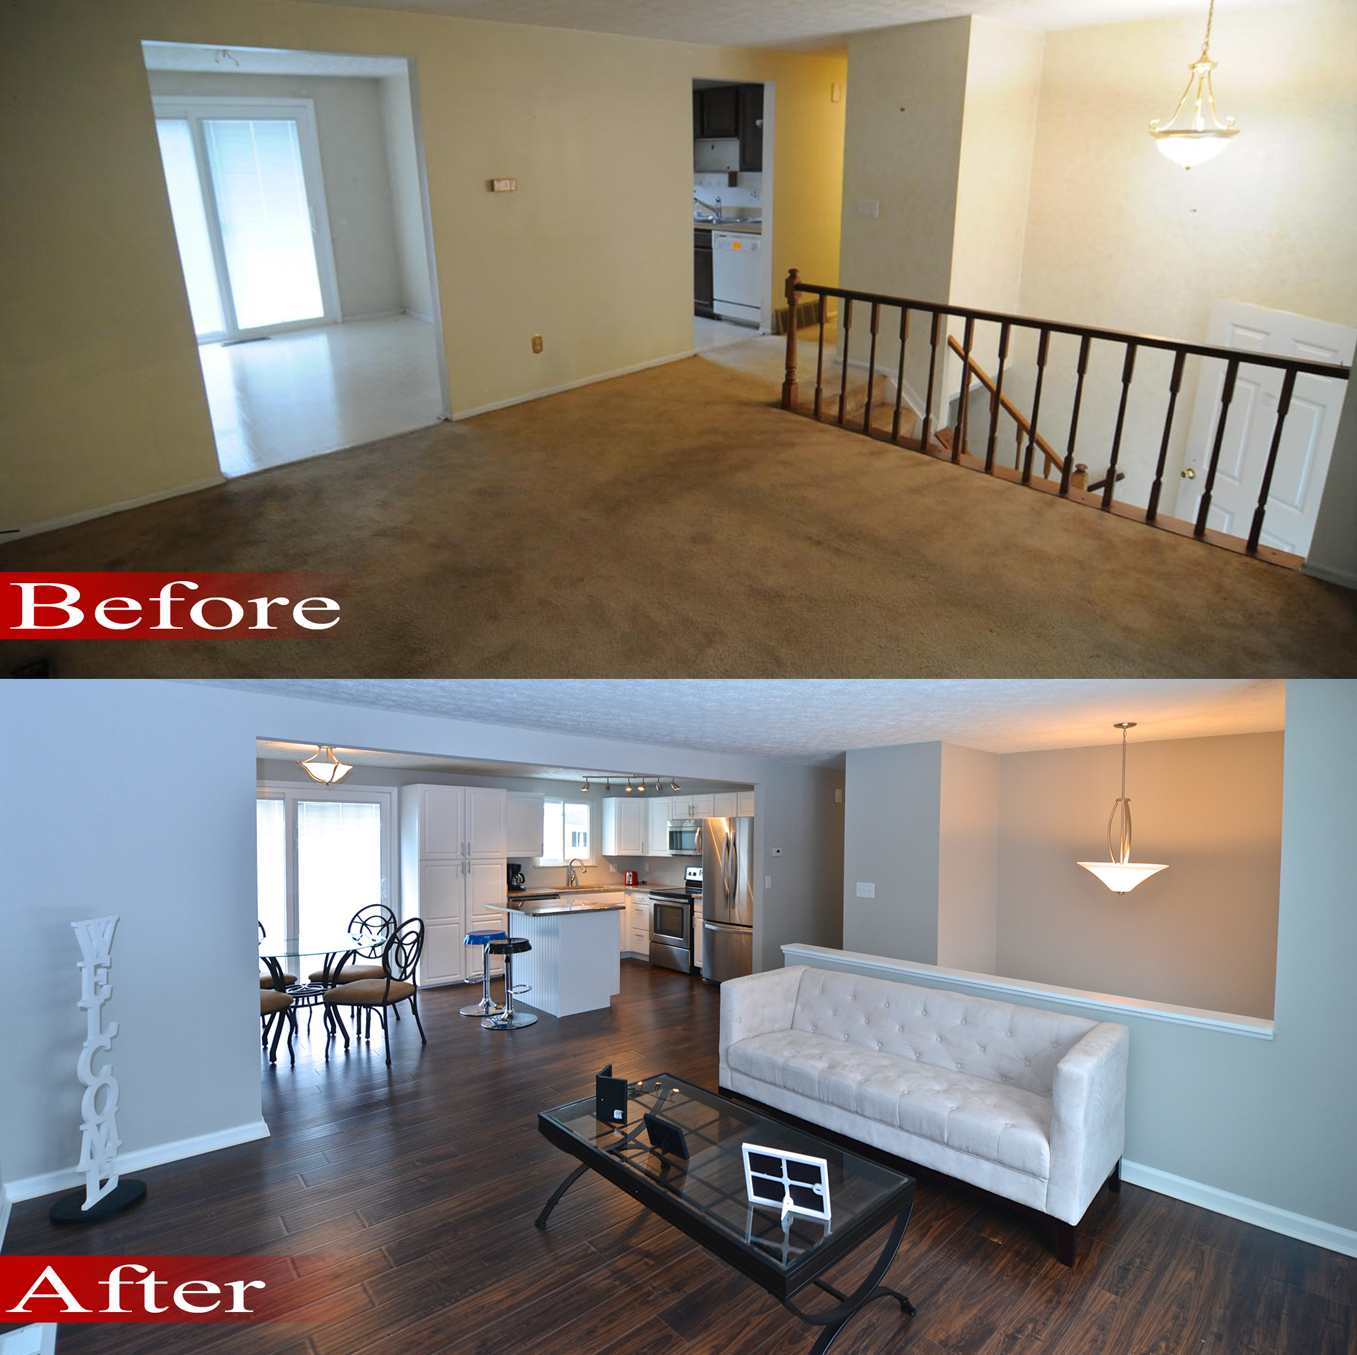 Property brothers before and after photos google search house makeover pinterest - Pinterest decoracion hogar ...